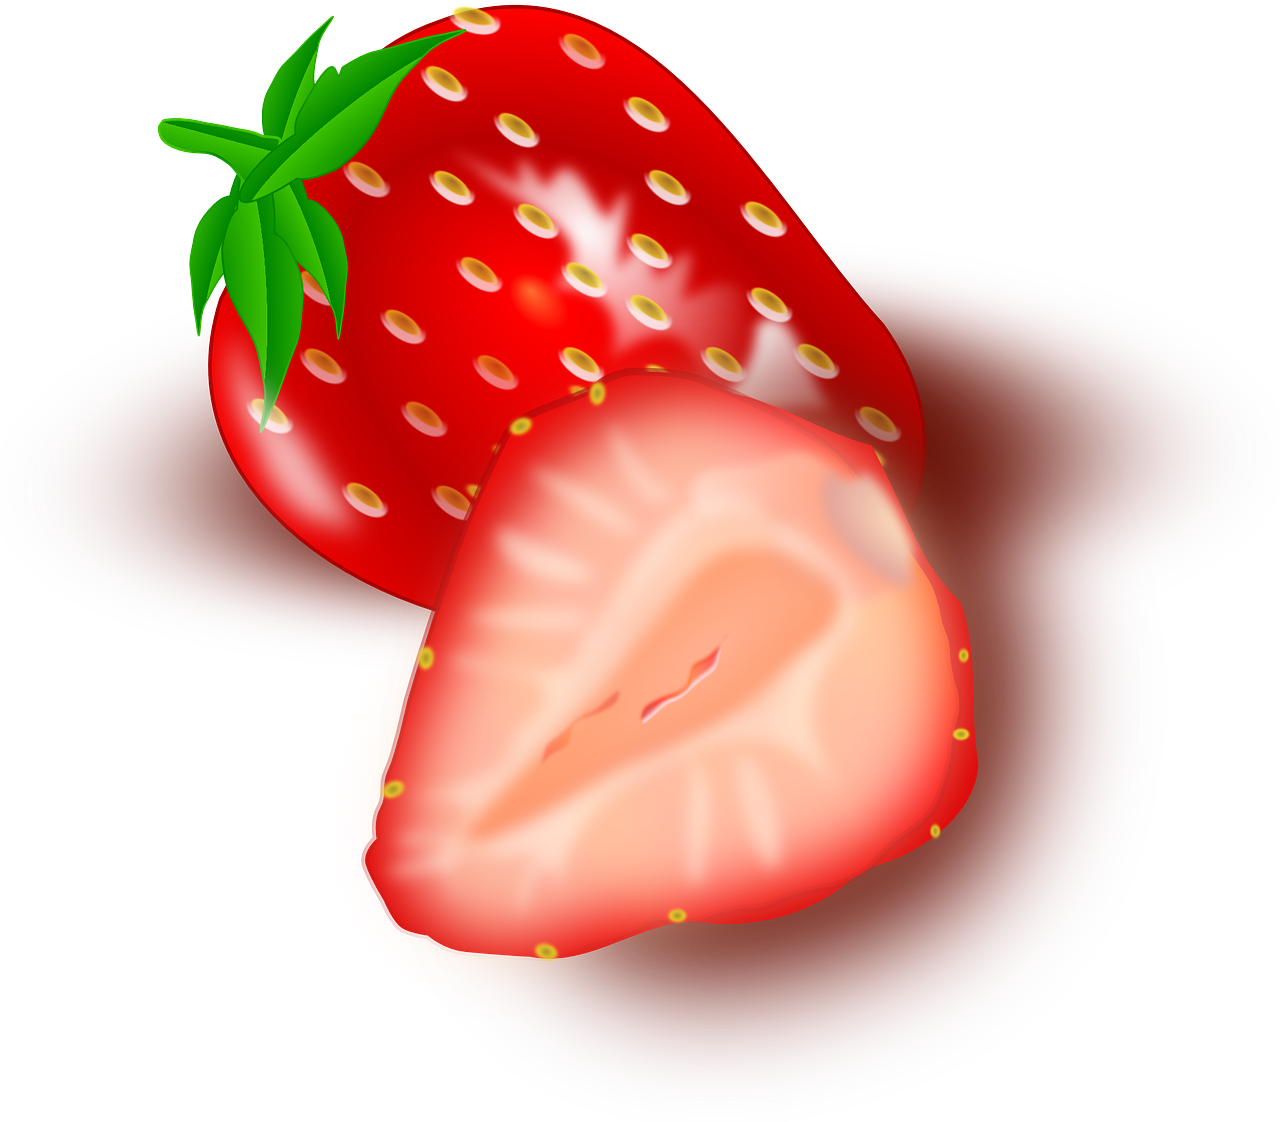 strawberry fruits sliced free picture